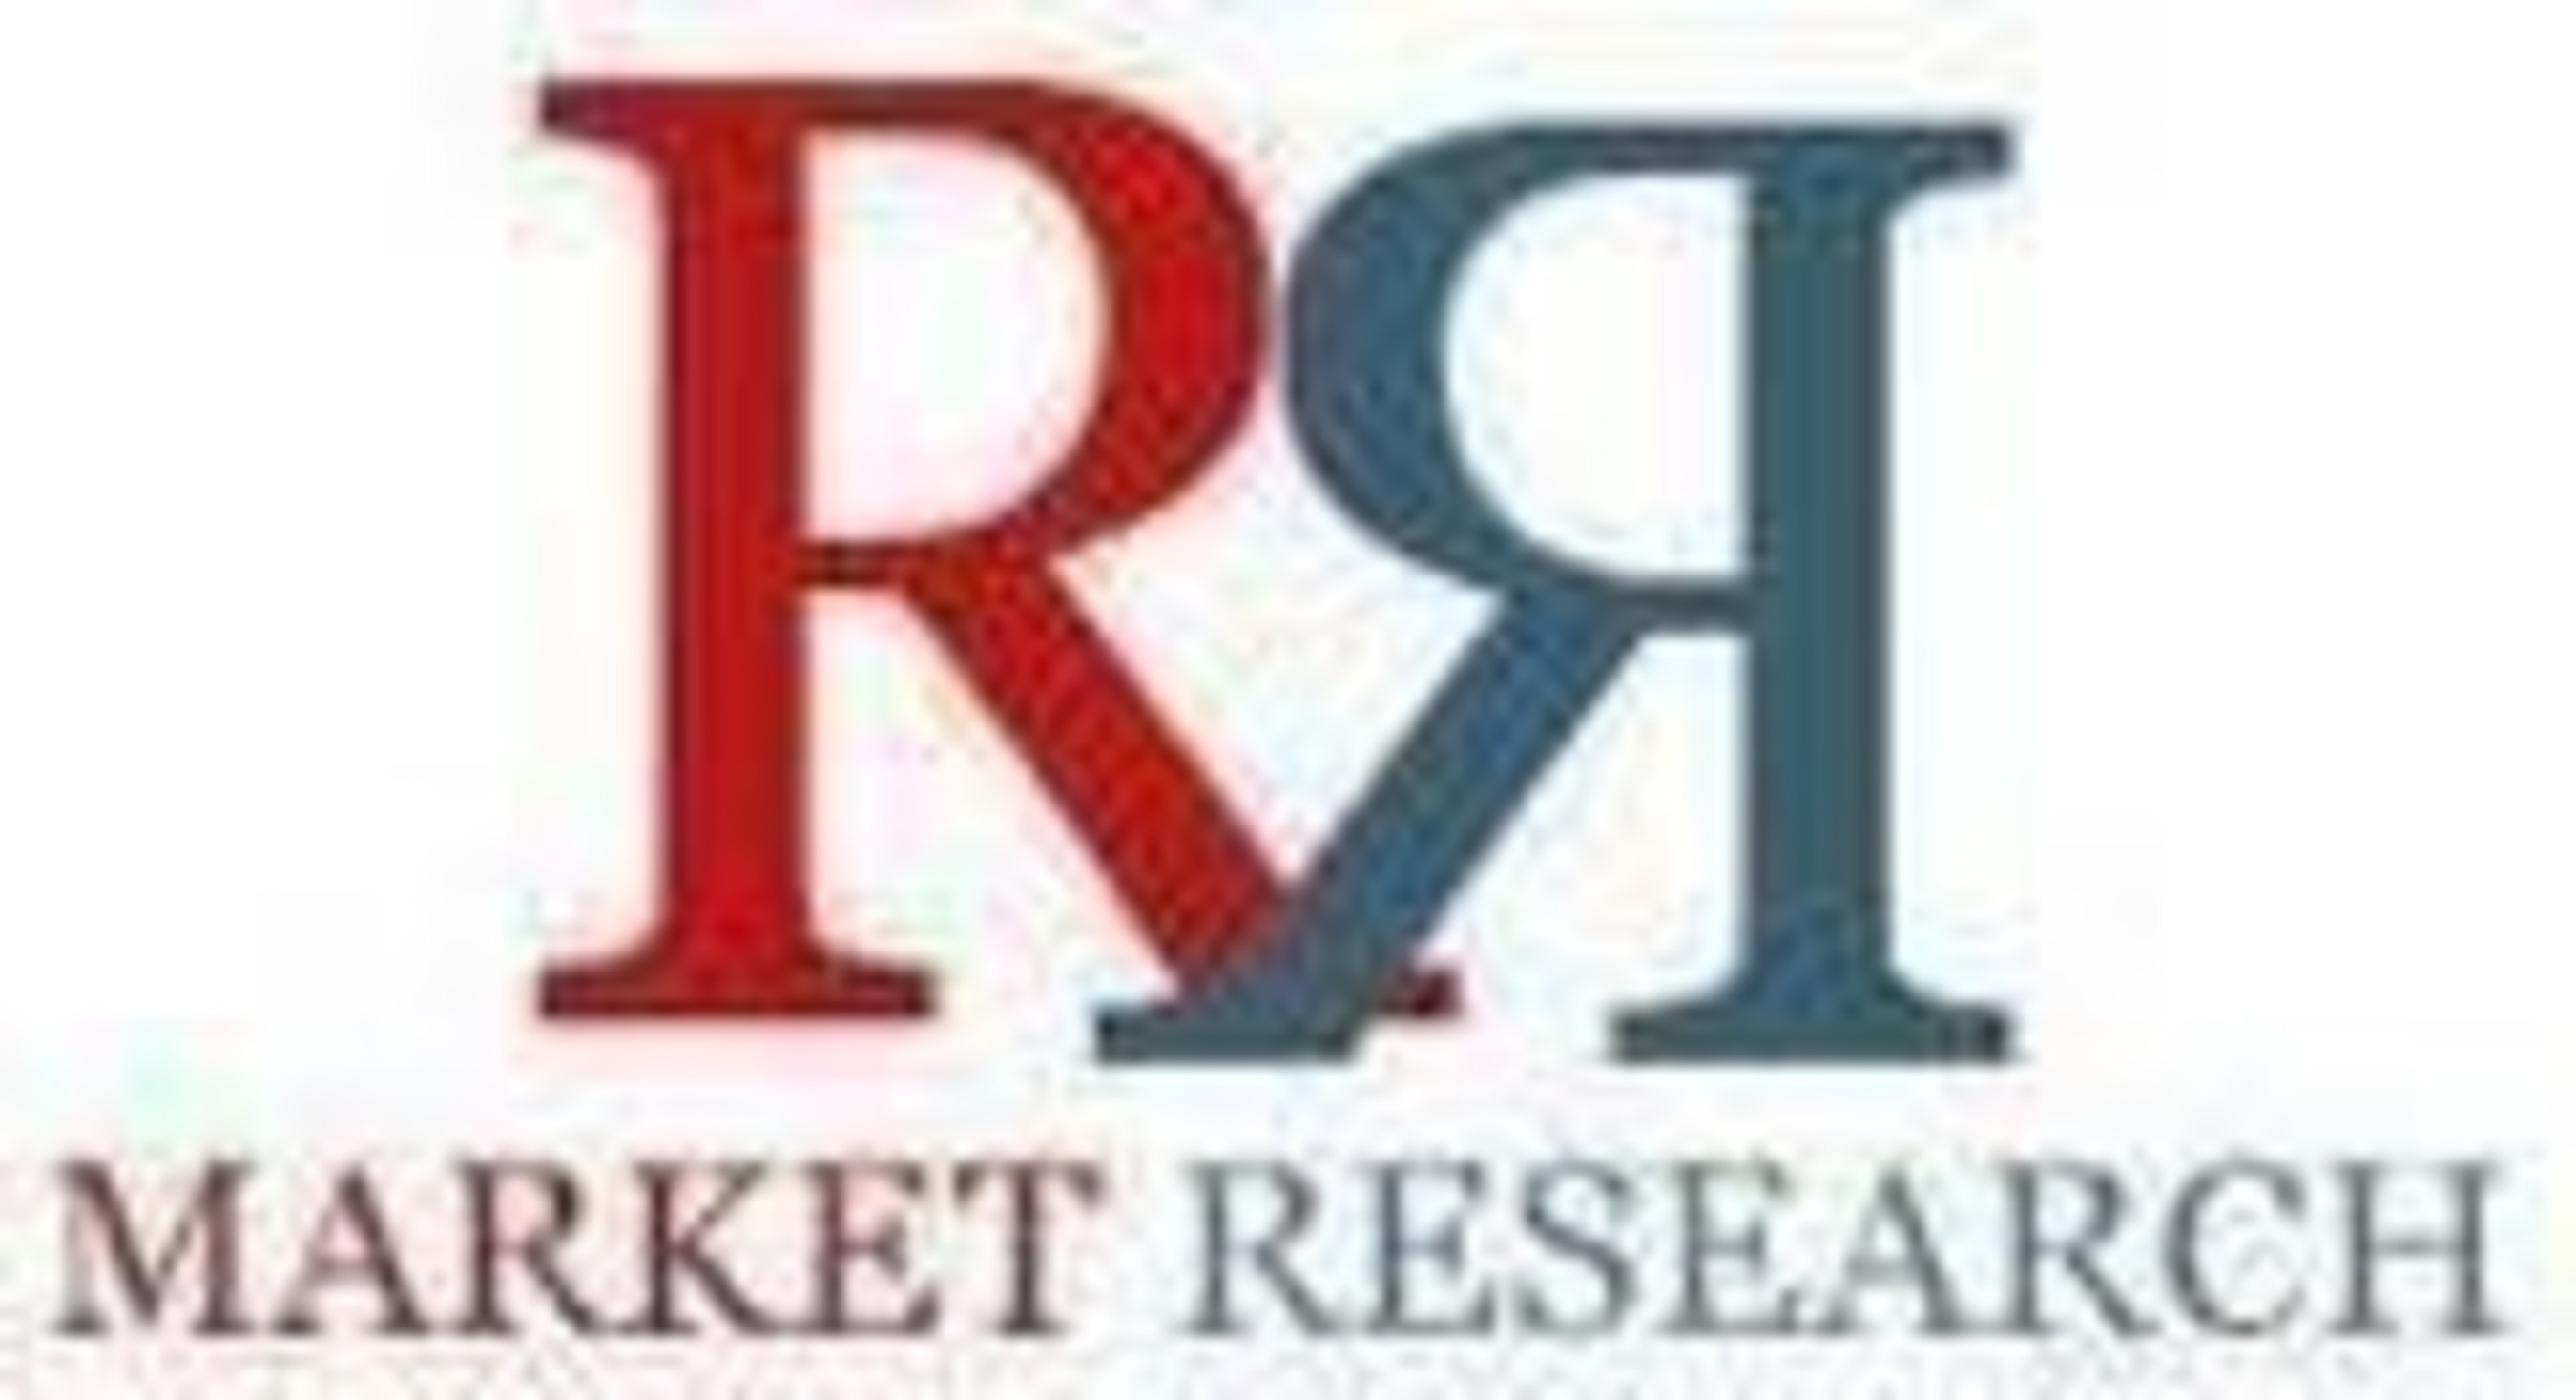 Enterprise Content Collaboration Market to Grow 17.7% CAGR to 2020 Driven by Growing Needs for Improved Organizational Productivity